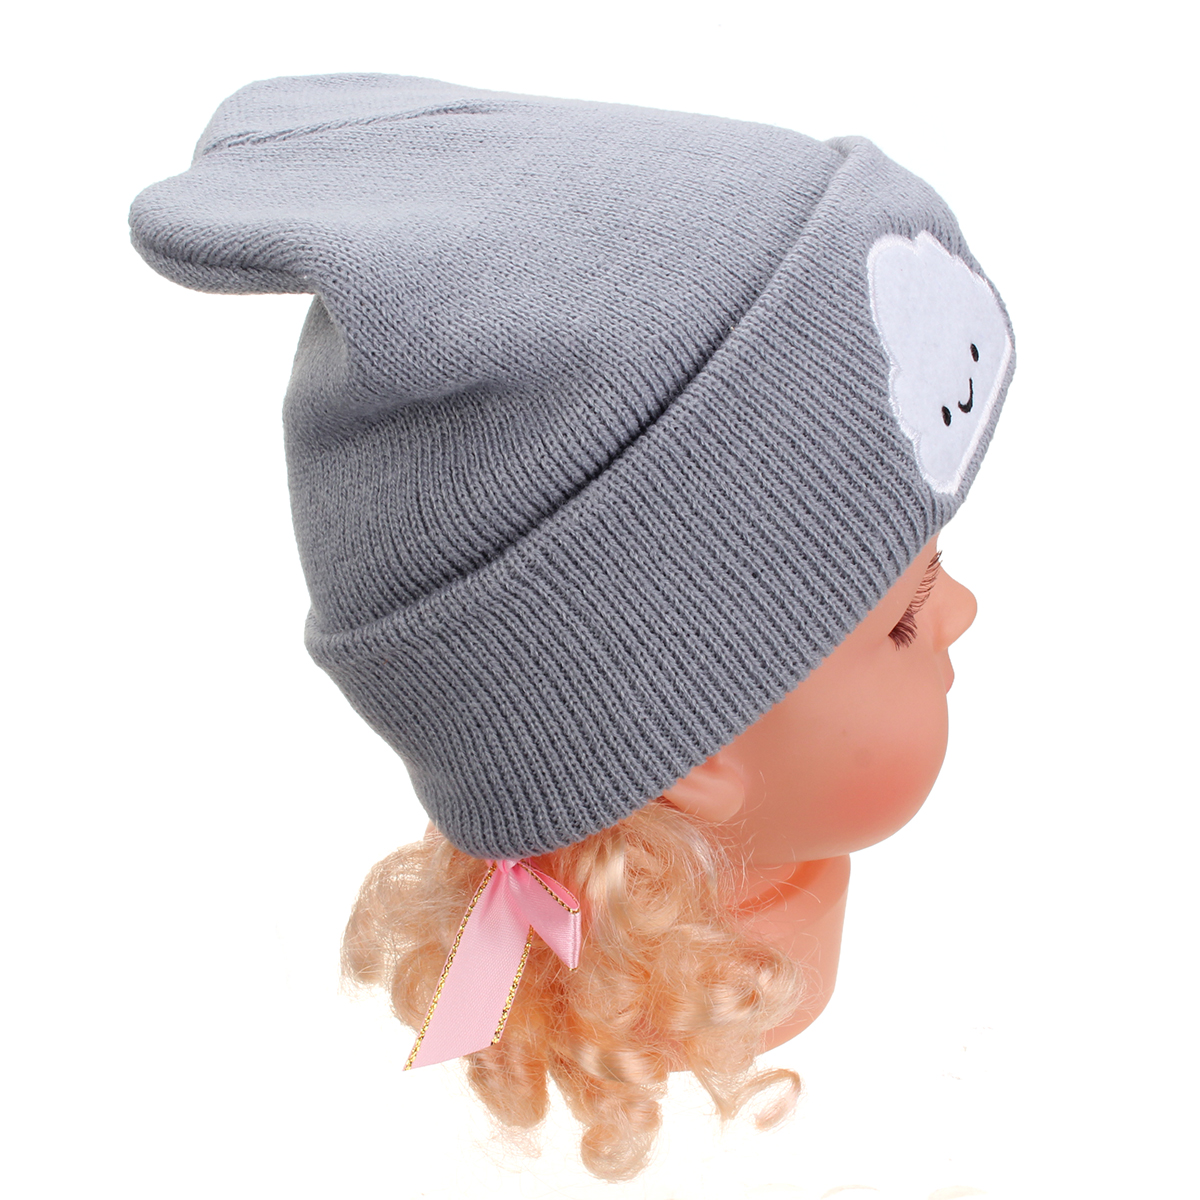 Baby Toddler Kids Boy Girl Cloud Beanie Cap Crochet Wool Knit Winter Warm Hat